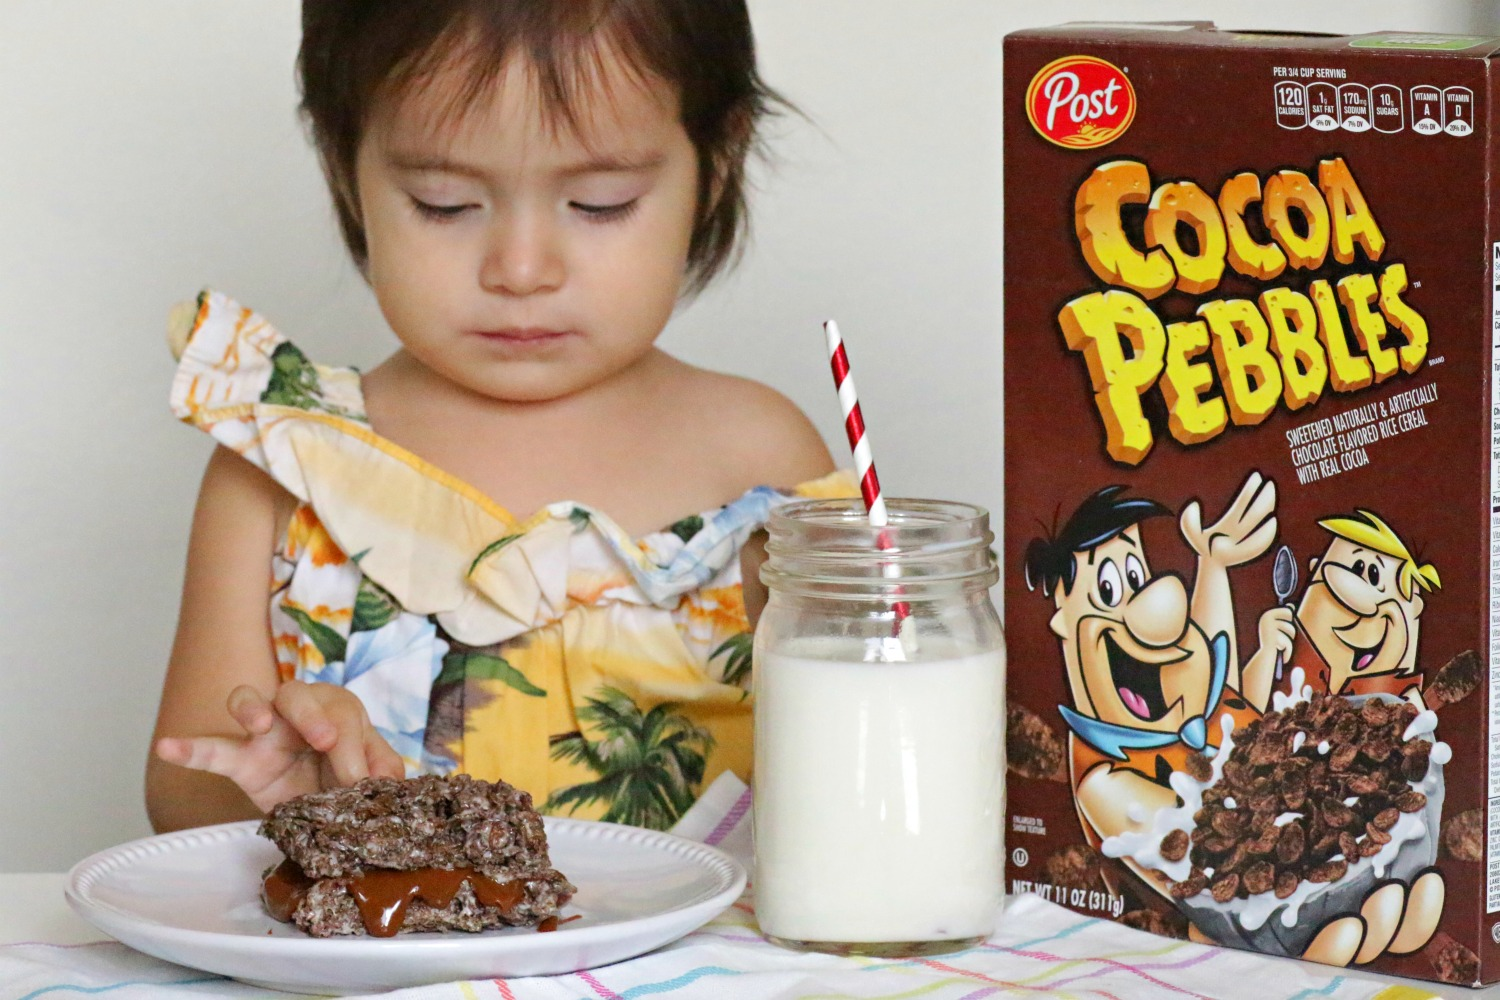 Cereal-Post-Cocoa-Pebbles-recipe